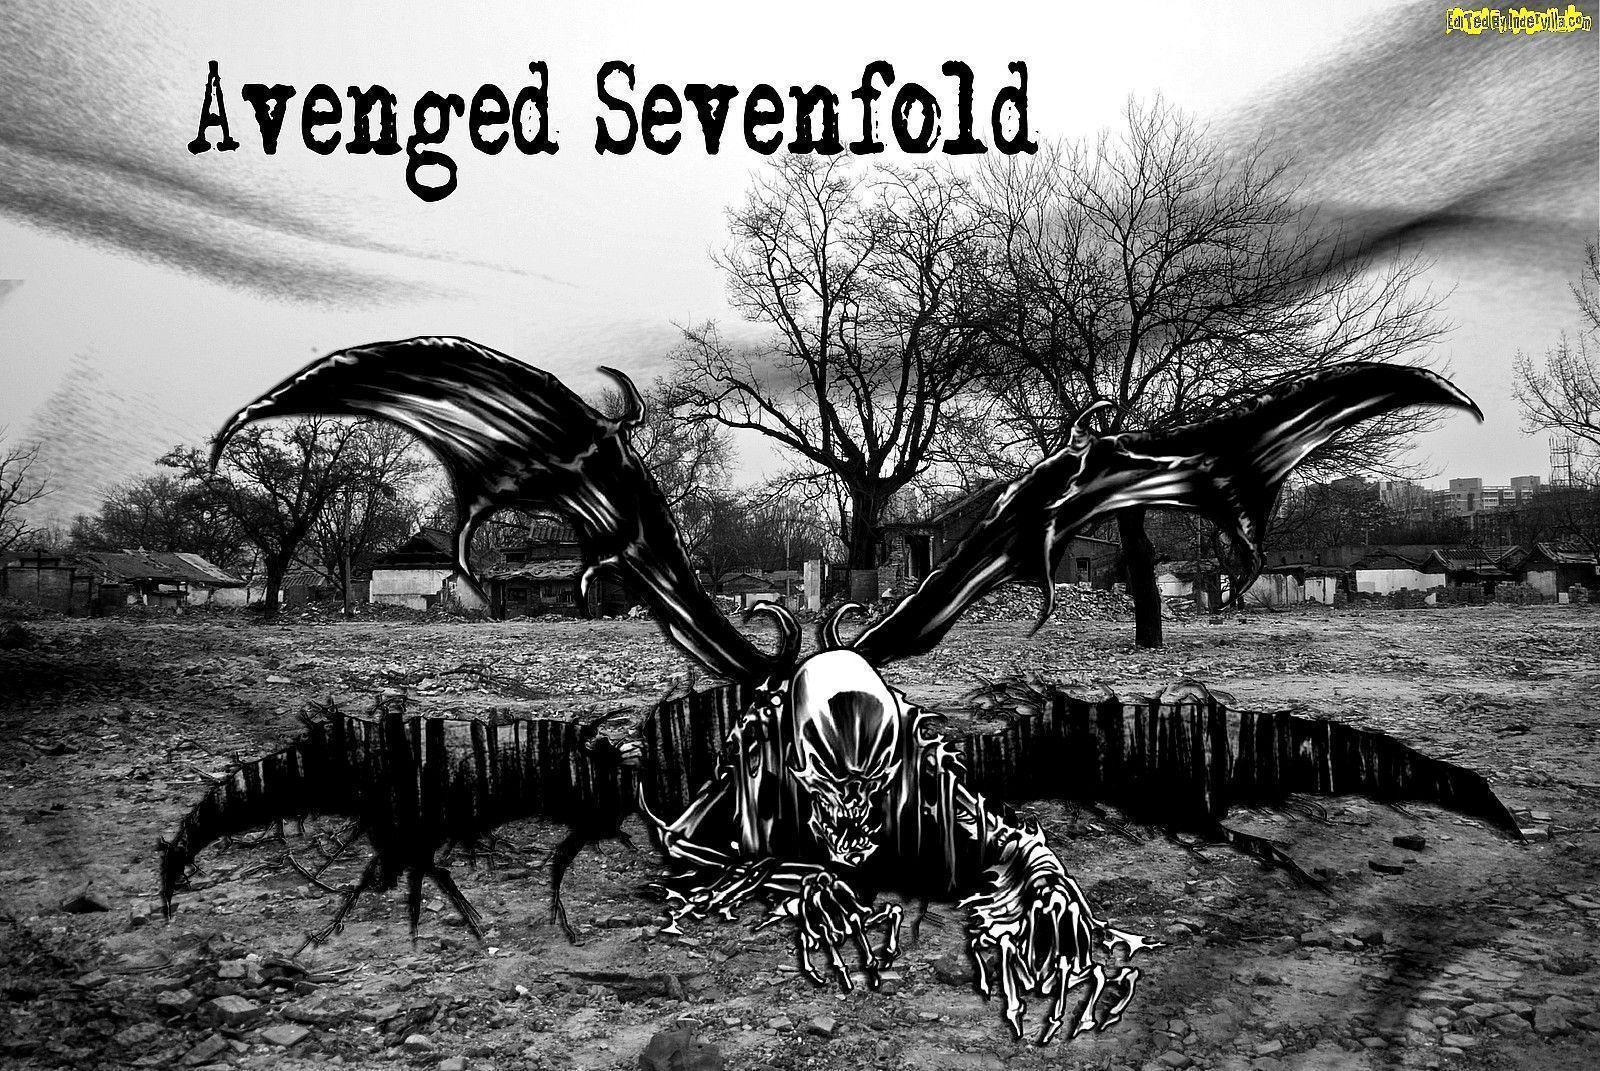 Avenged sevenfold wallpapers wallpaper cave avenged sevenfold hd wallpaper 2376 wallpapers hd colourinwallpaper voltagebd Choice Image